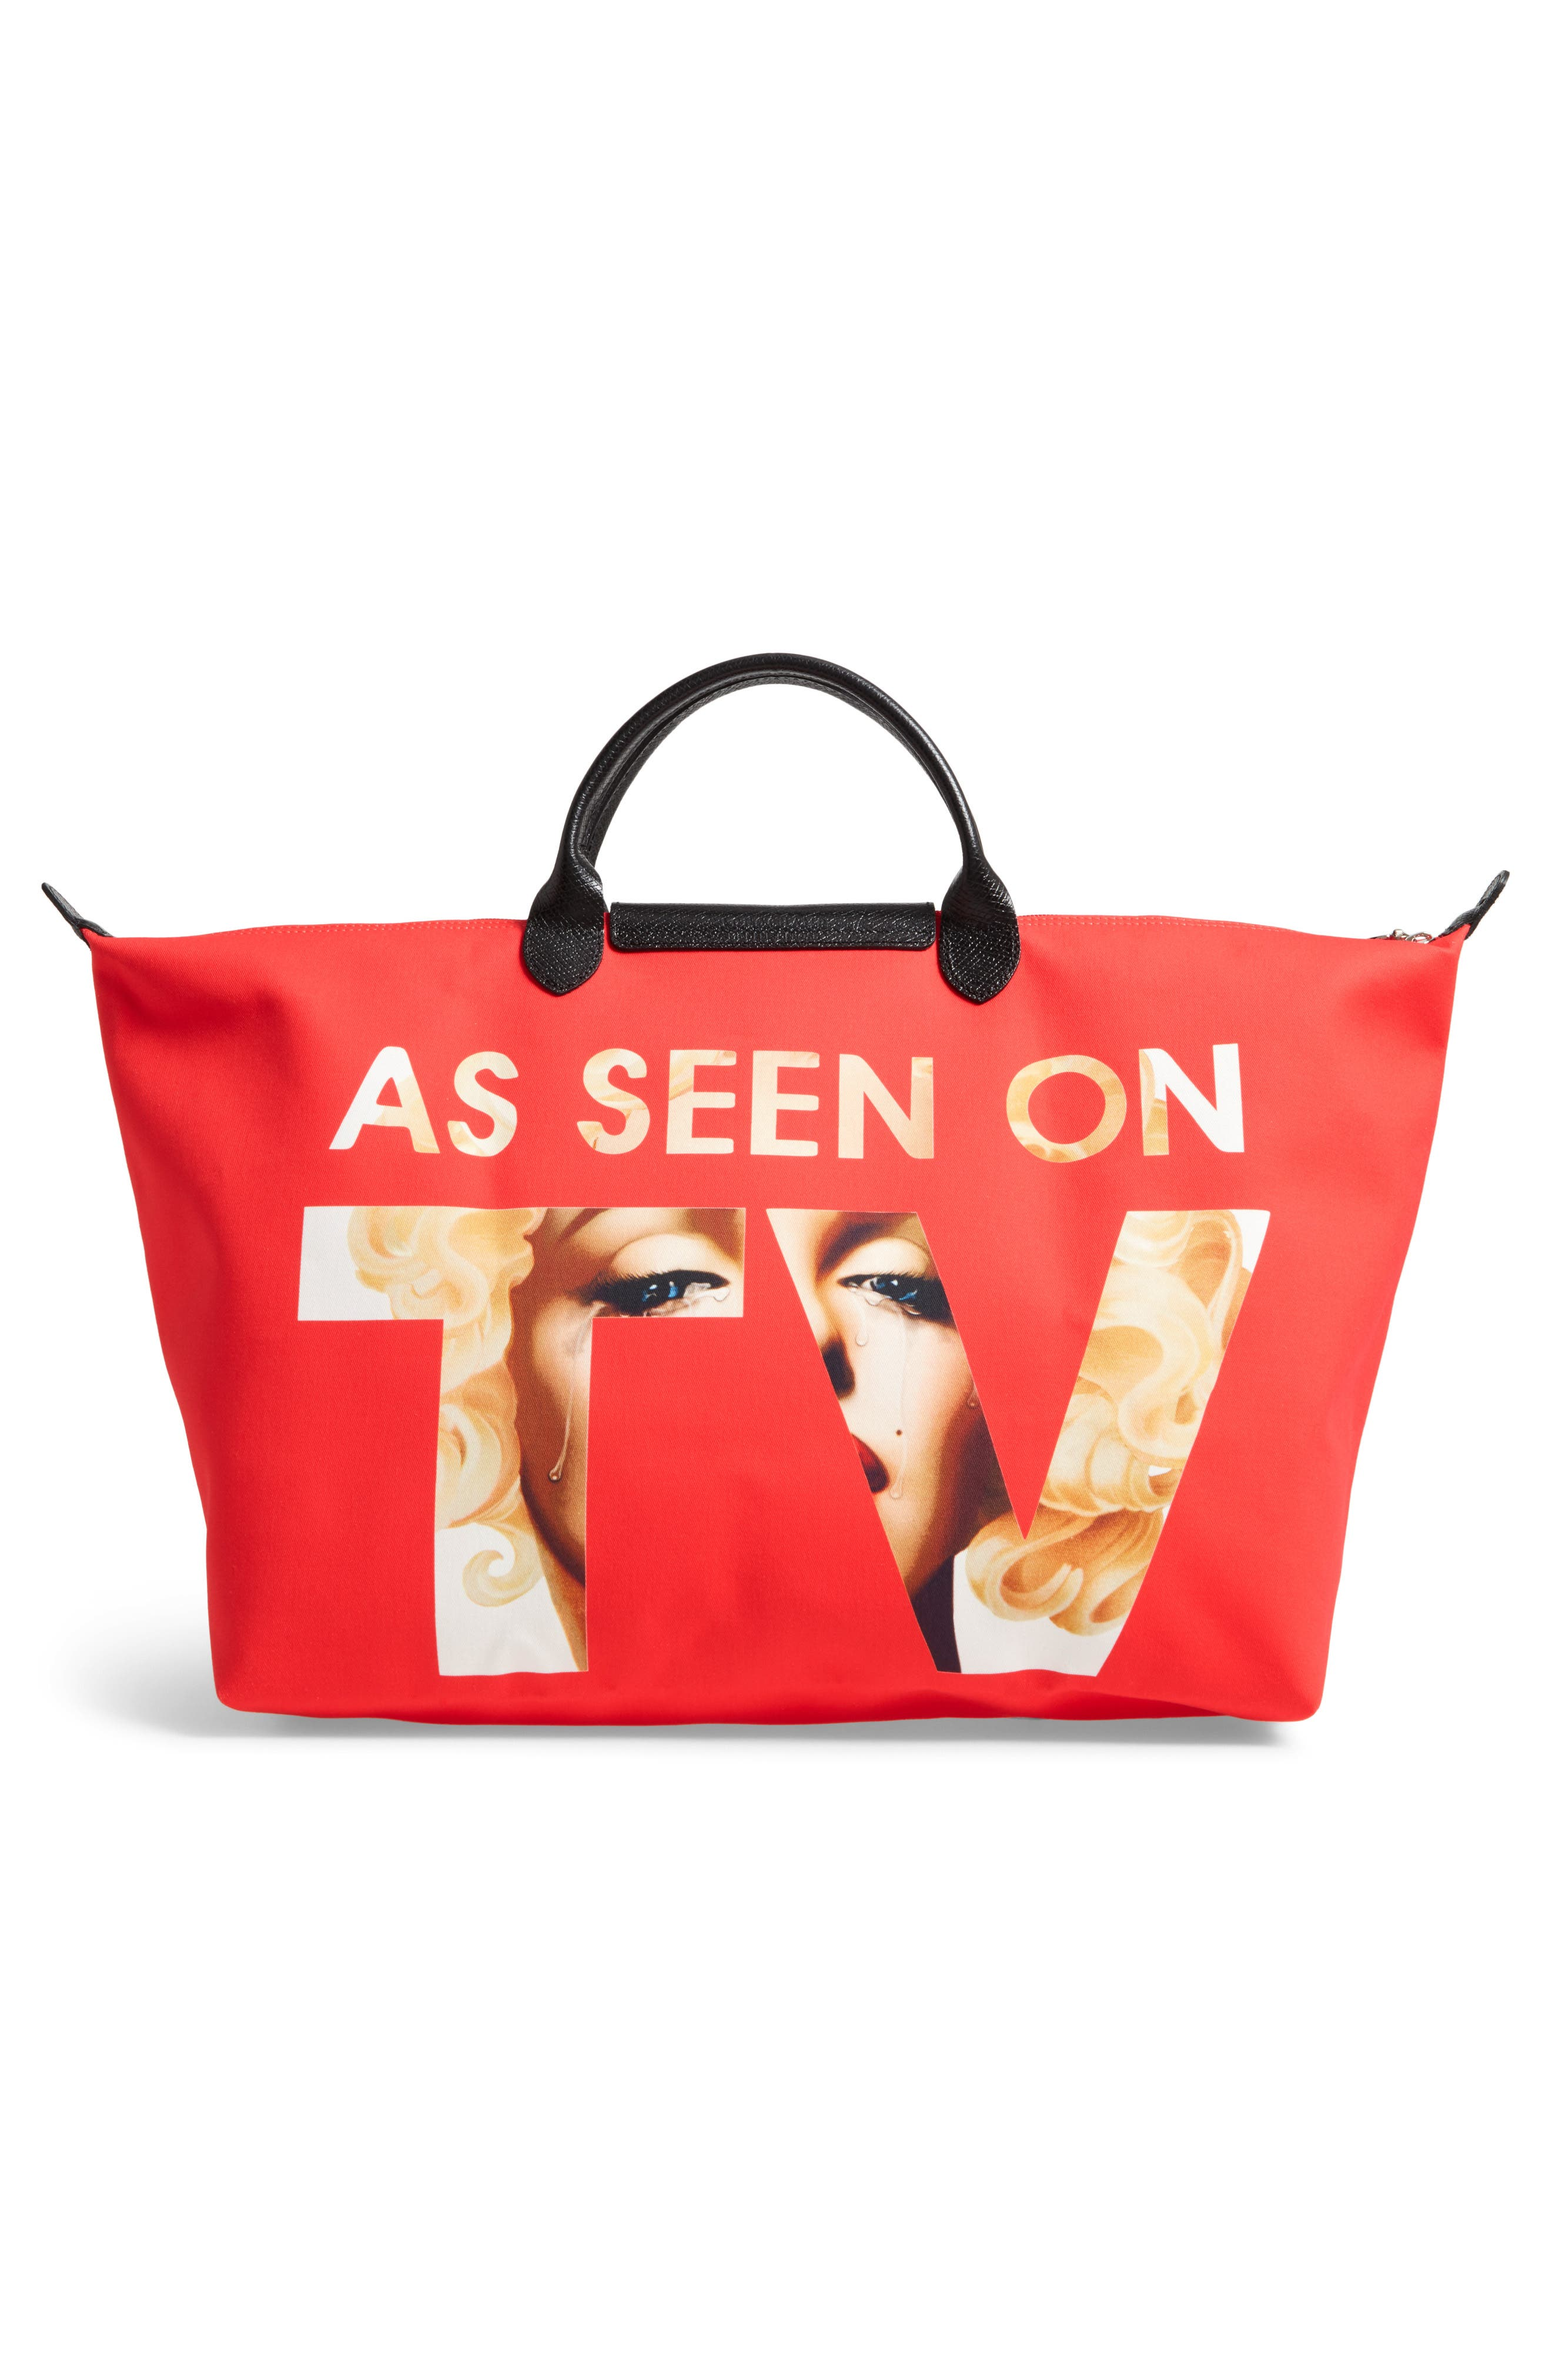 x Jeremy Scott As Seen on TV Tote,                             Alternate thumbnail 2, color,                             Red